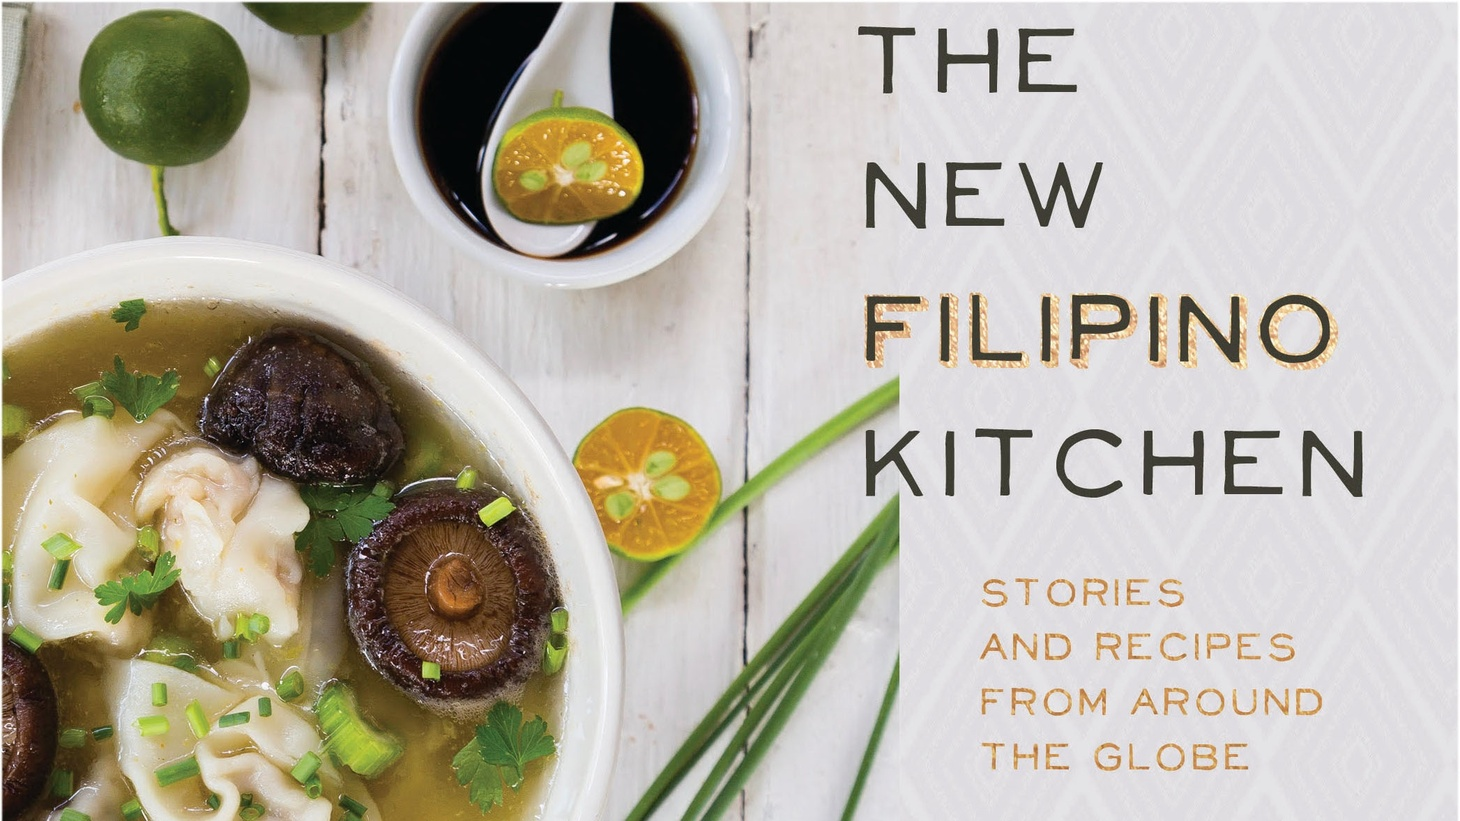 The New Filipino Kitchen: Stories and Recipes from Around the Globe by Jacqueline Chio-Lauri.